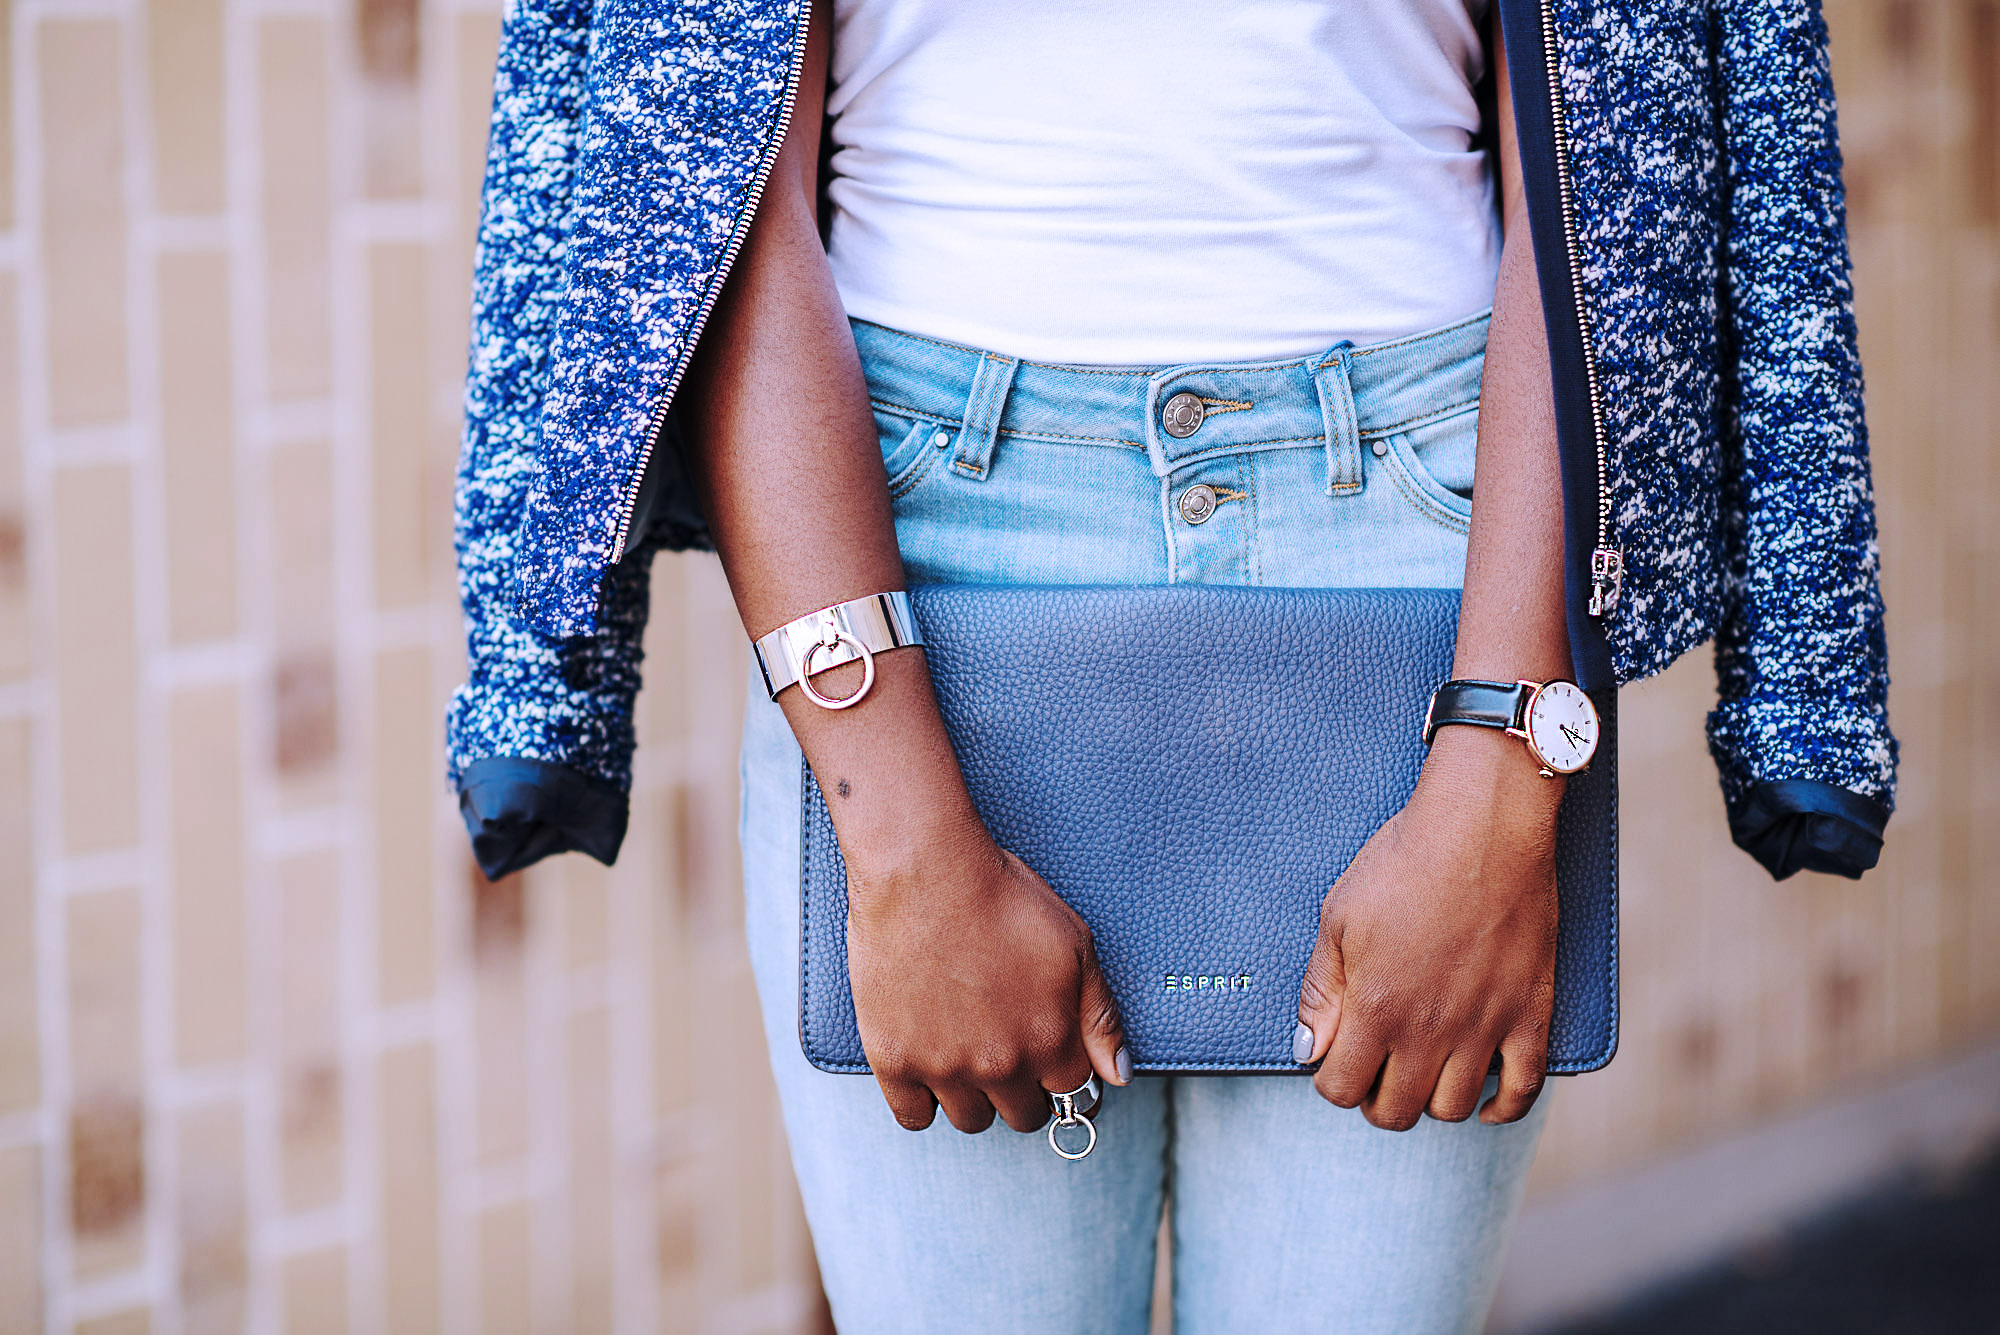 4_tricks_to_always_look_chic_in_casual_everyday_outfits-bound-cuffs-ring-pochette-bleu-grey-nails-nailpolish-turning_point_blog-fashion-lifestyle-travel